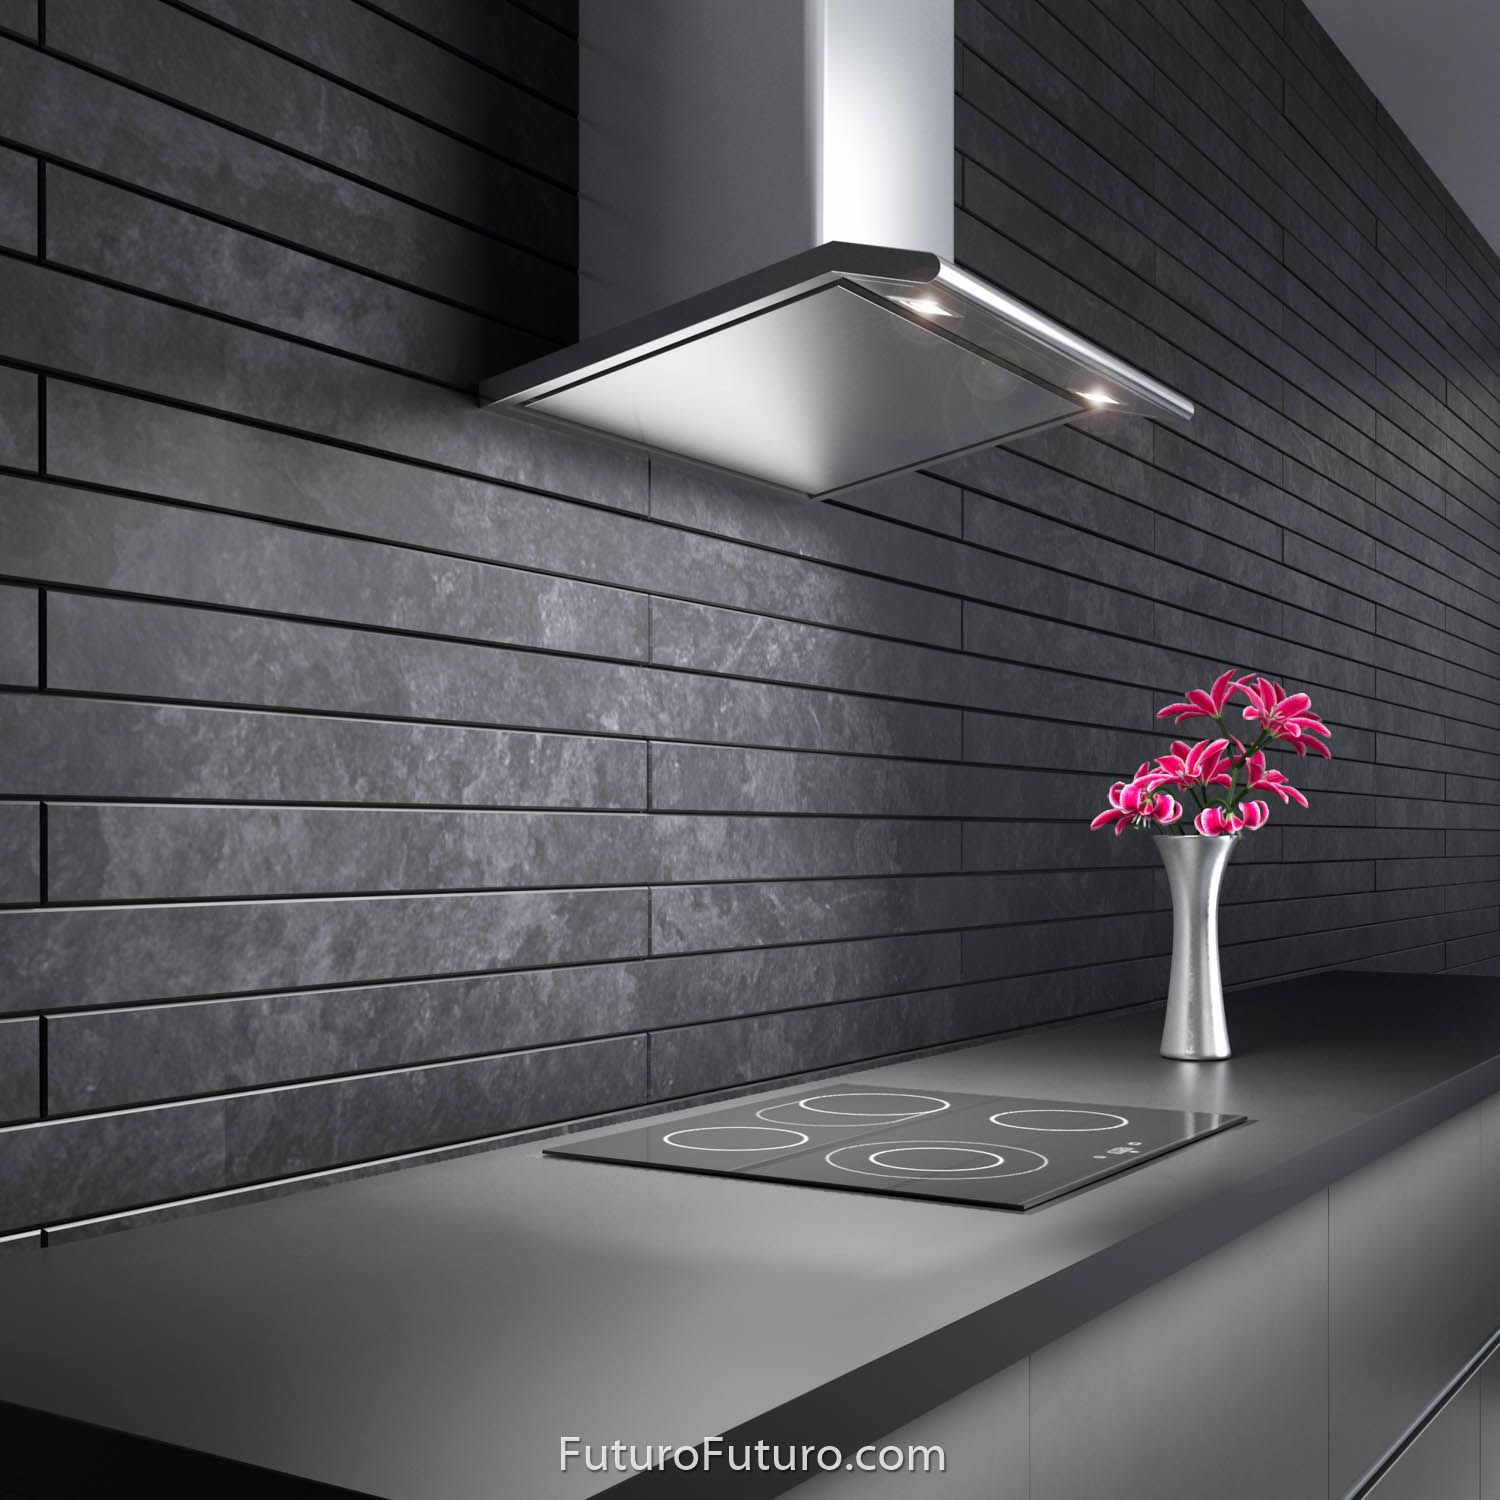 24 Capri Wall The Capri Line Of Kitchen Range Hoods By Futuro Futuro Features A Streamlined Slim De Range Hood Stainless Steel Lighting Ductless Range Hood